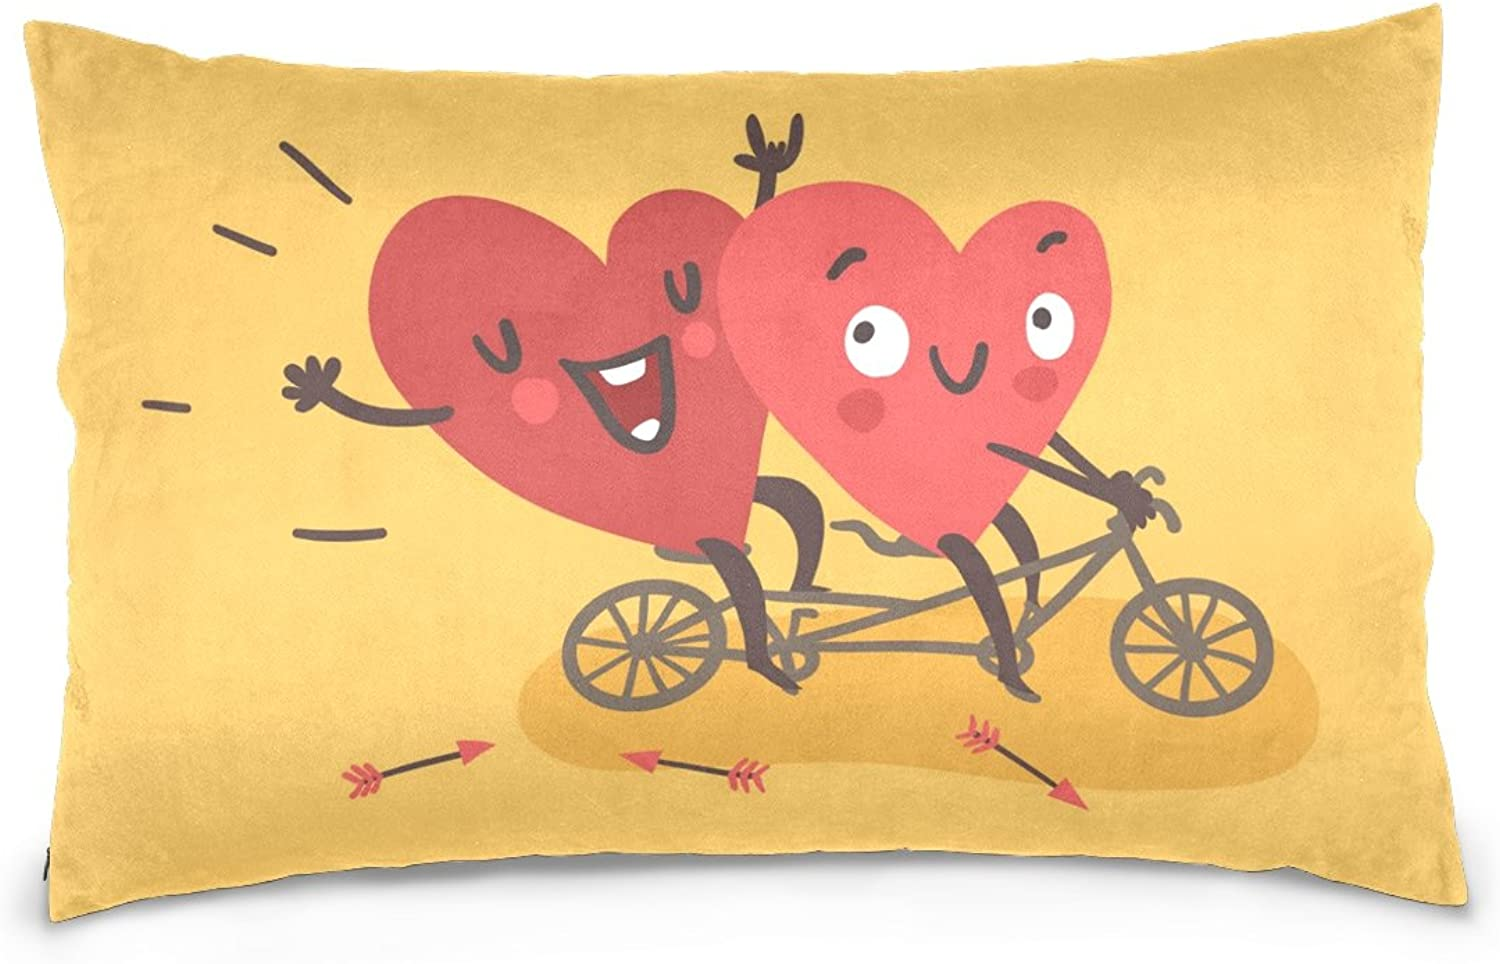 Top Carpenter Happy Valentine's Day Velvet Oblong Lumbar Plush Throw Pillow Cover Shams Cushion Case - 16x24in - Decorative Invisible Zipper Design for Couch Sofa Pillowcase Only